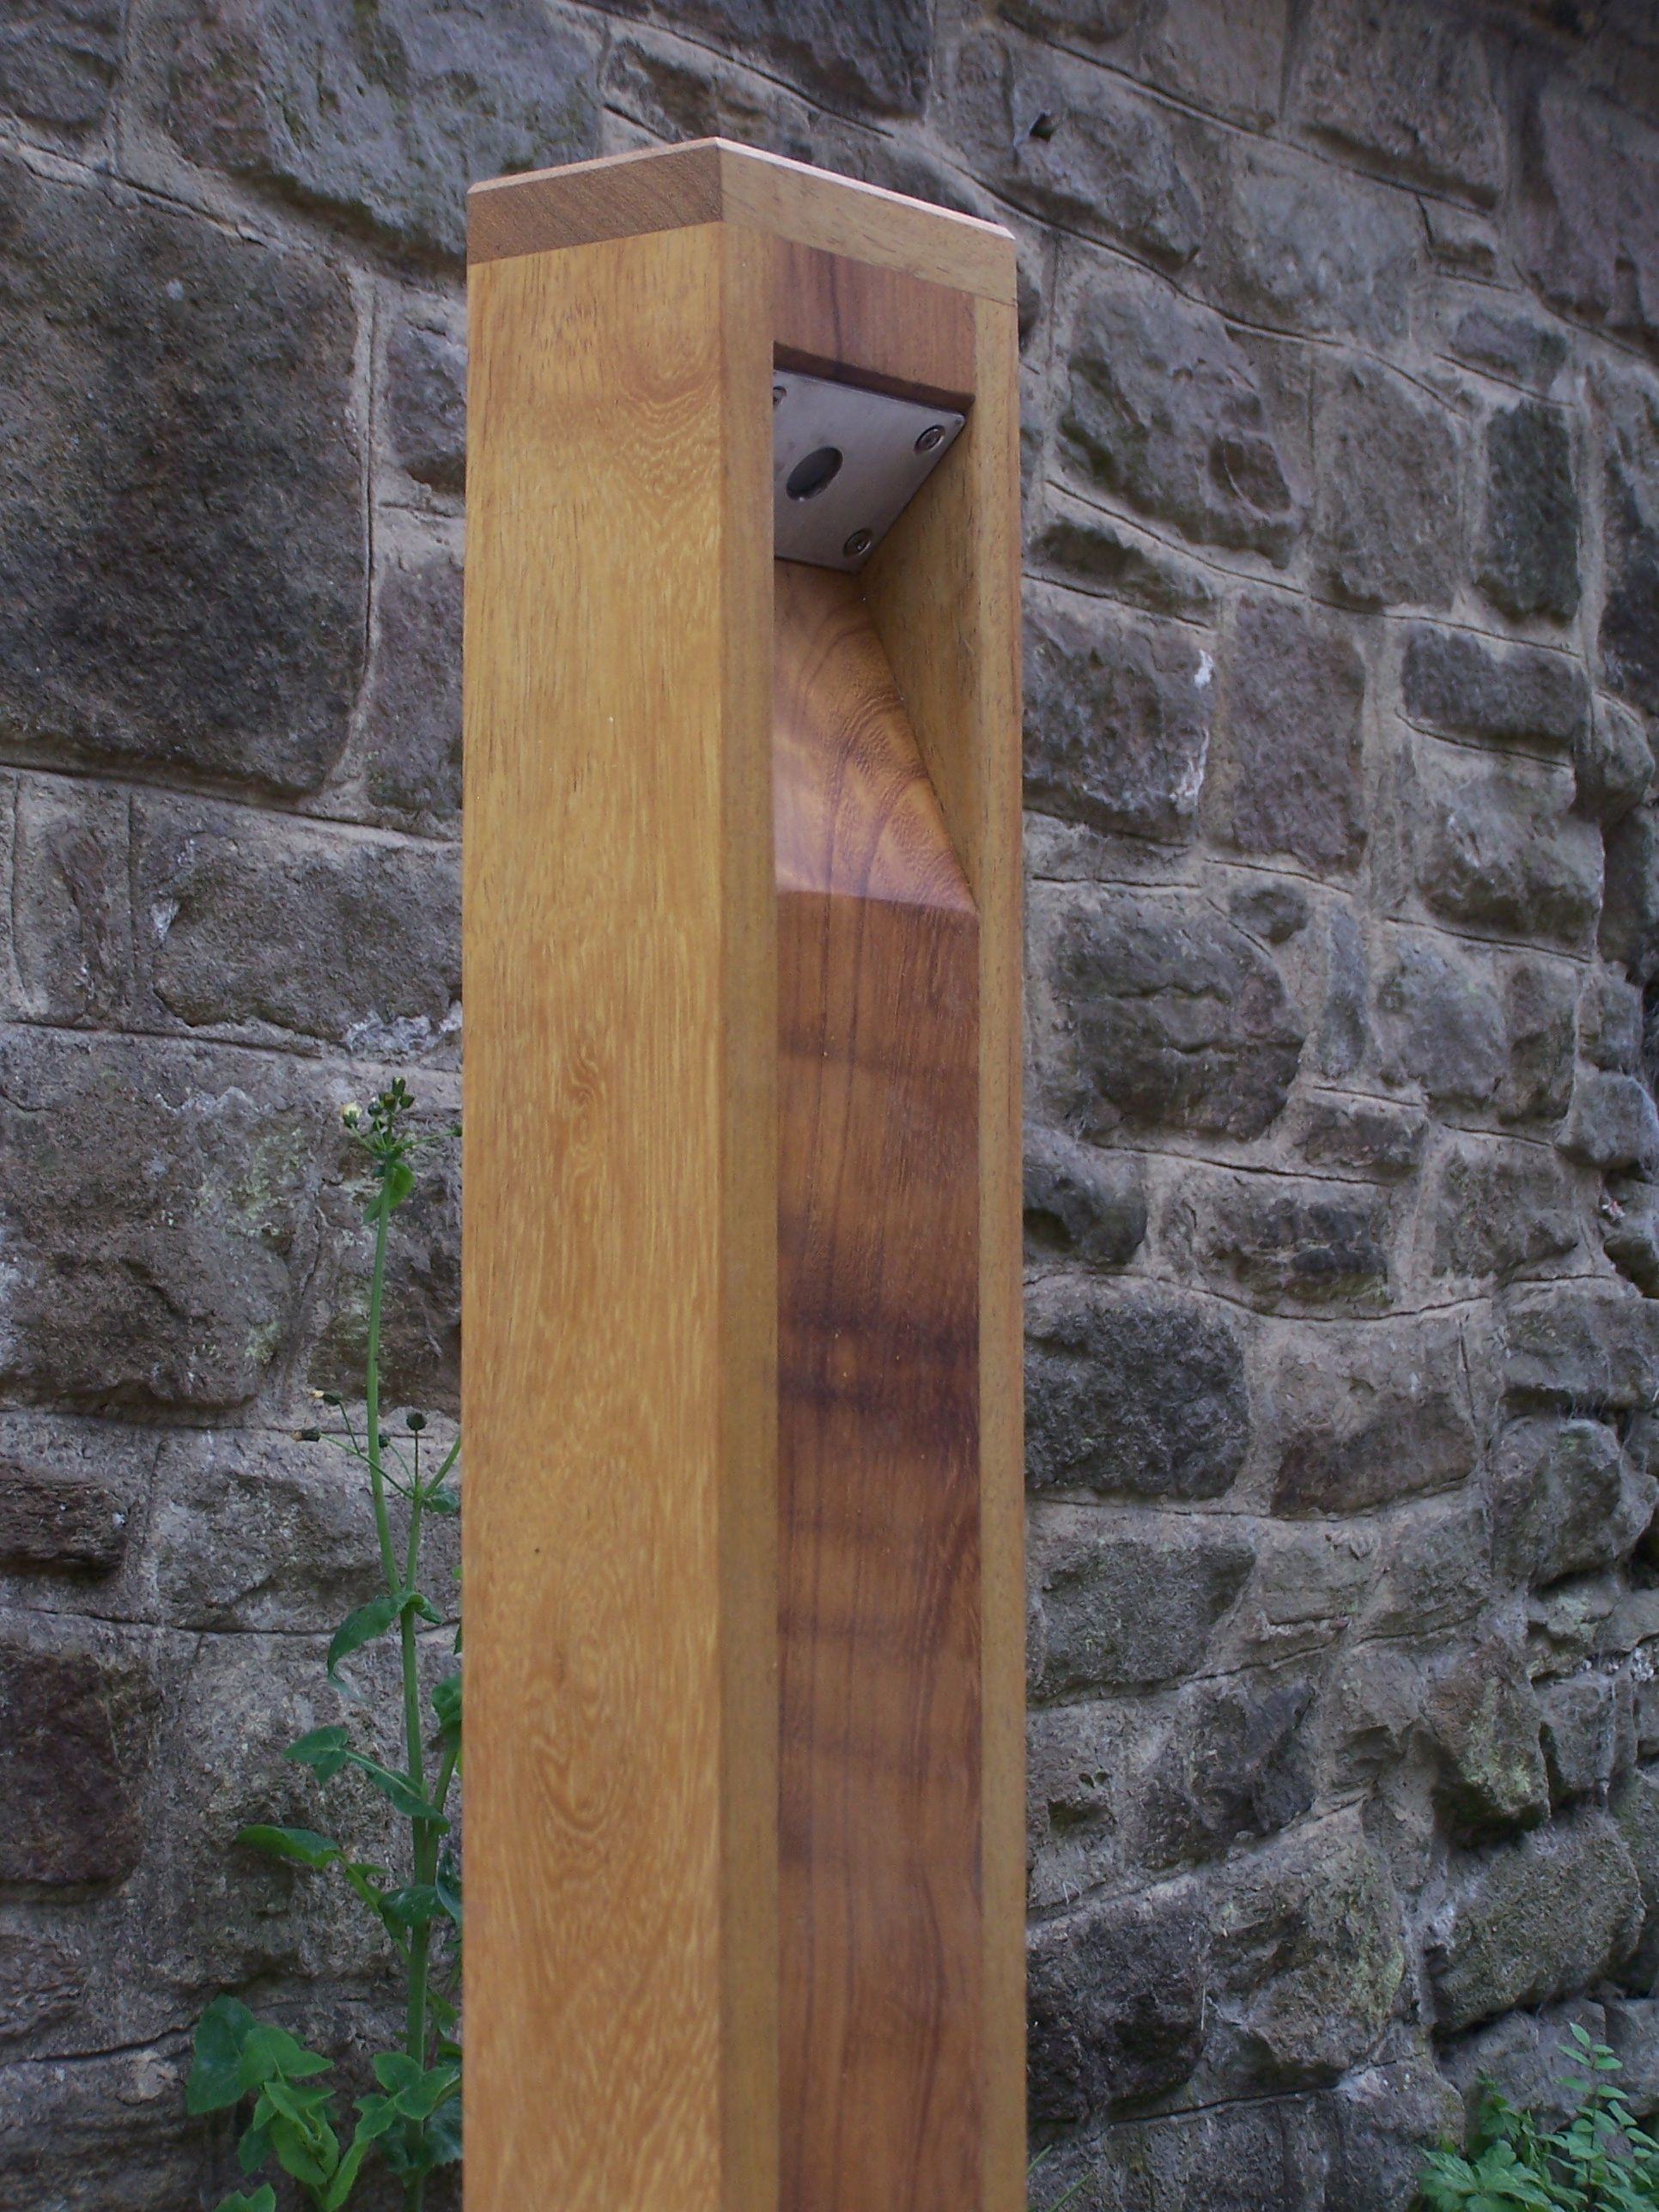 Wooden Light Post Designs The Robust And Beautifully Made City Led Bollard Light Has